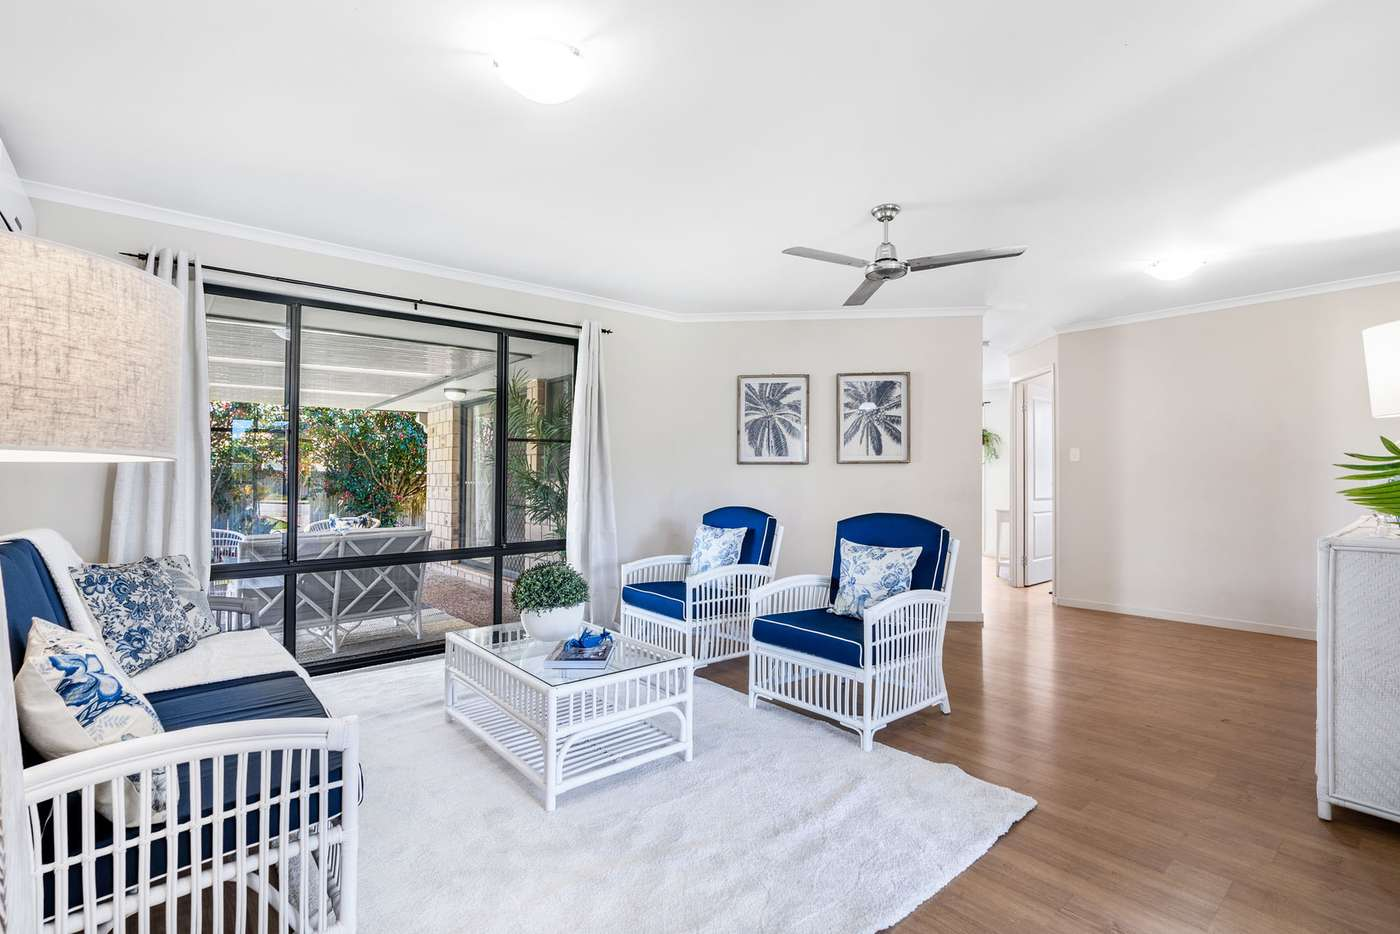 Sixth view of Homely house listing, 48a Hardy Road, Birkdale QLD 4159